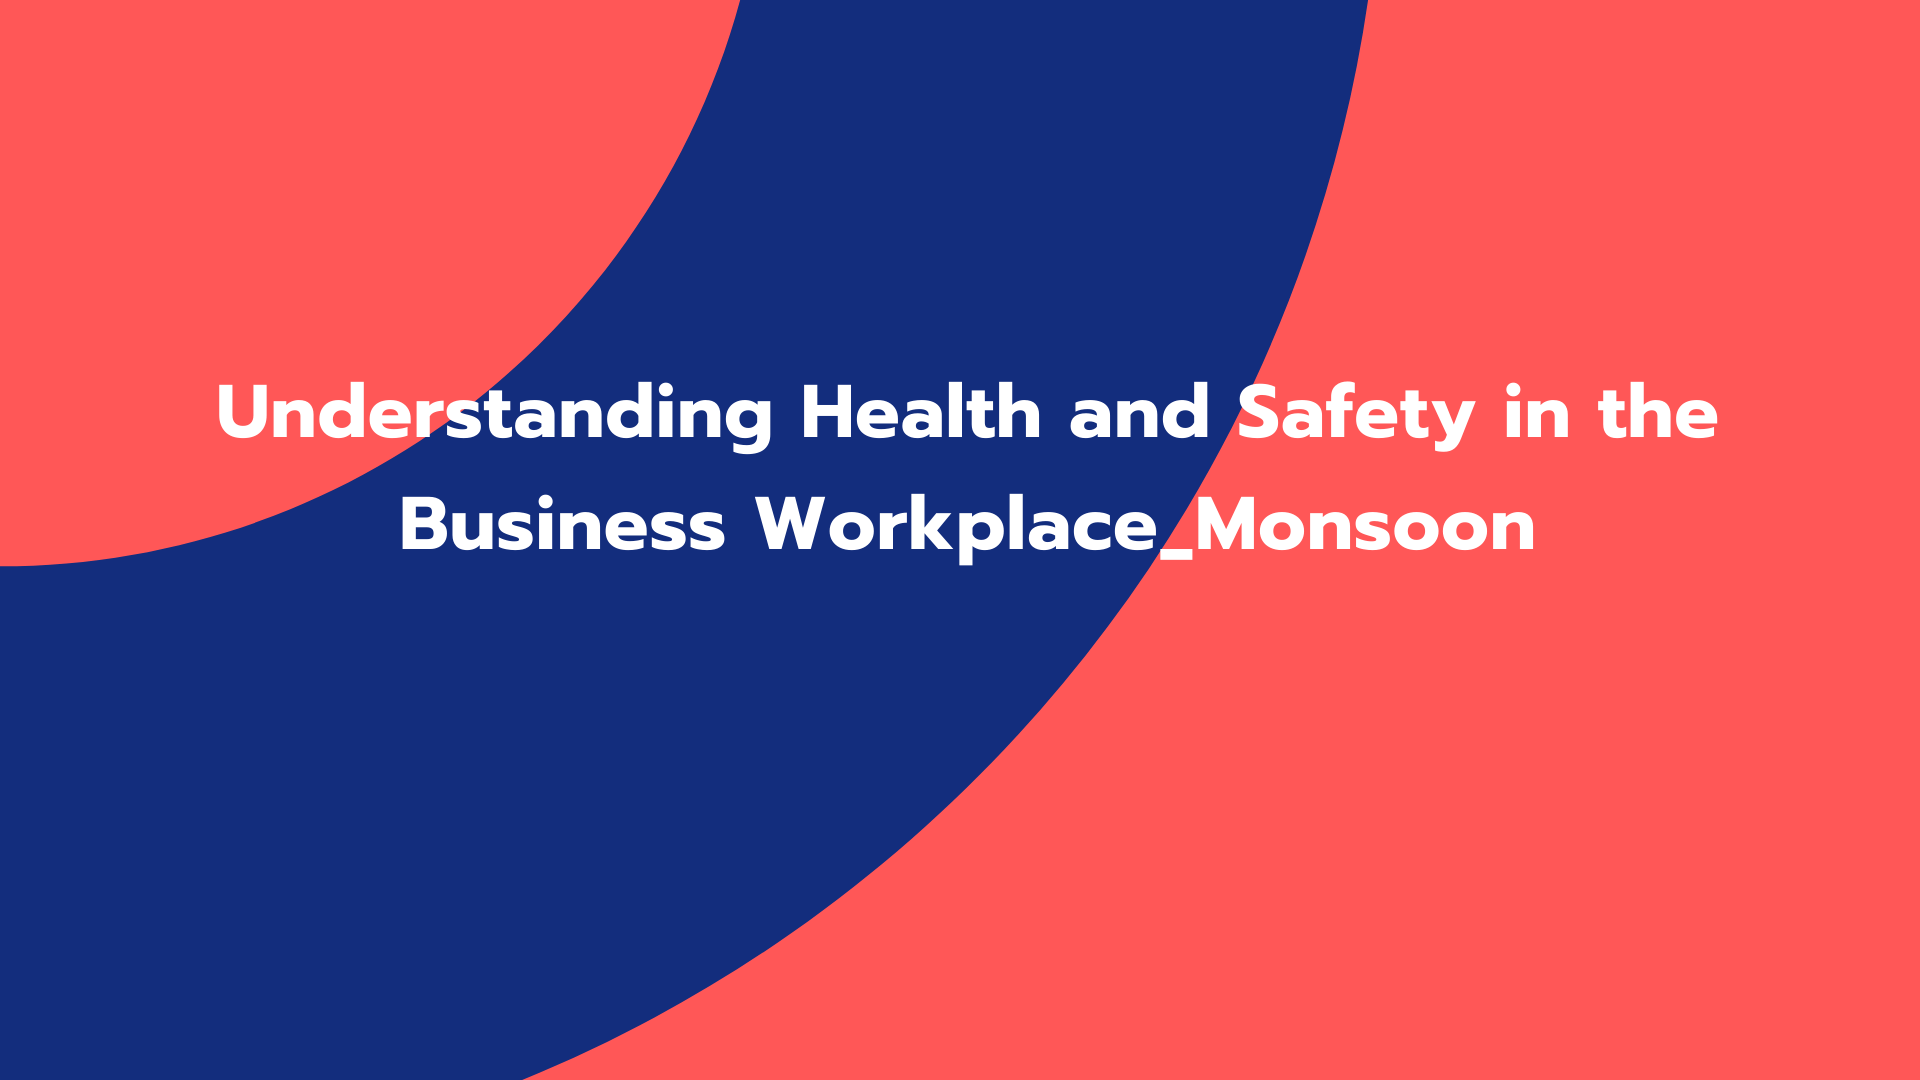 Understanding Health and Safety in the Business Workplace_Monsoon